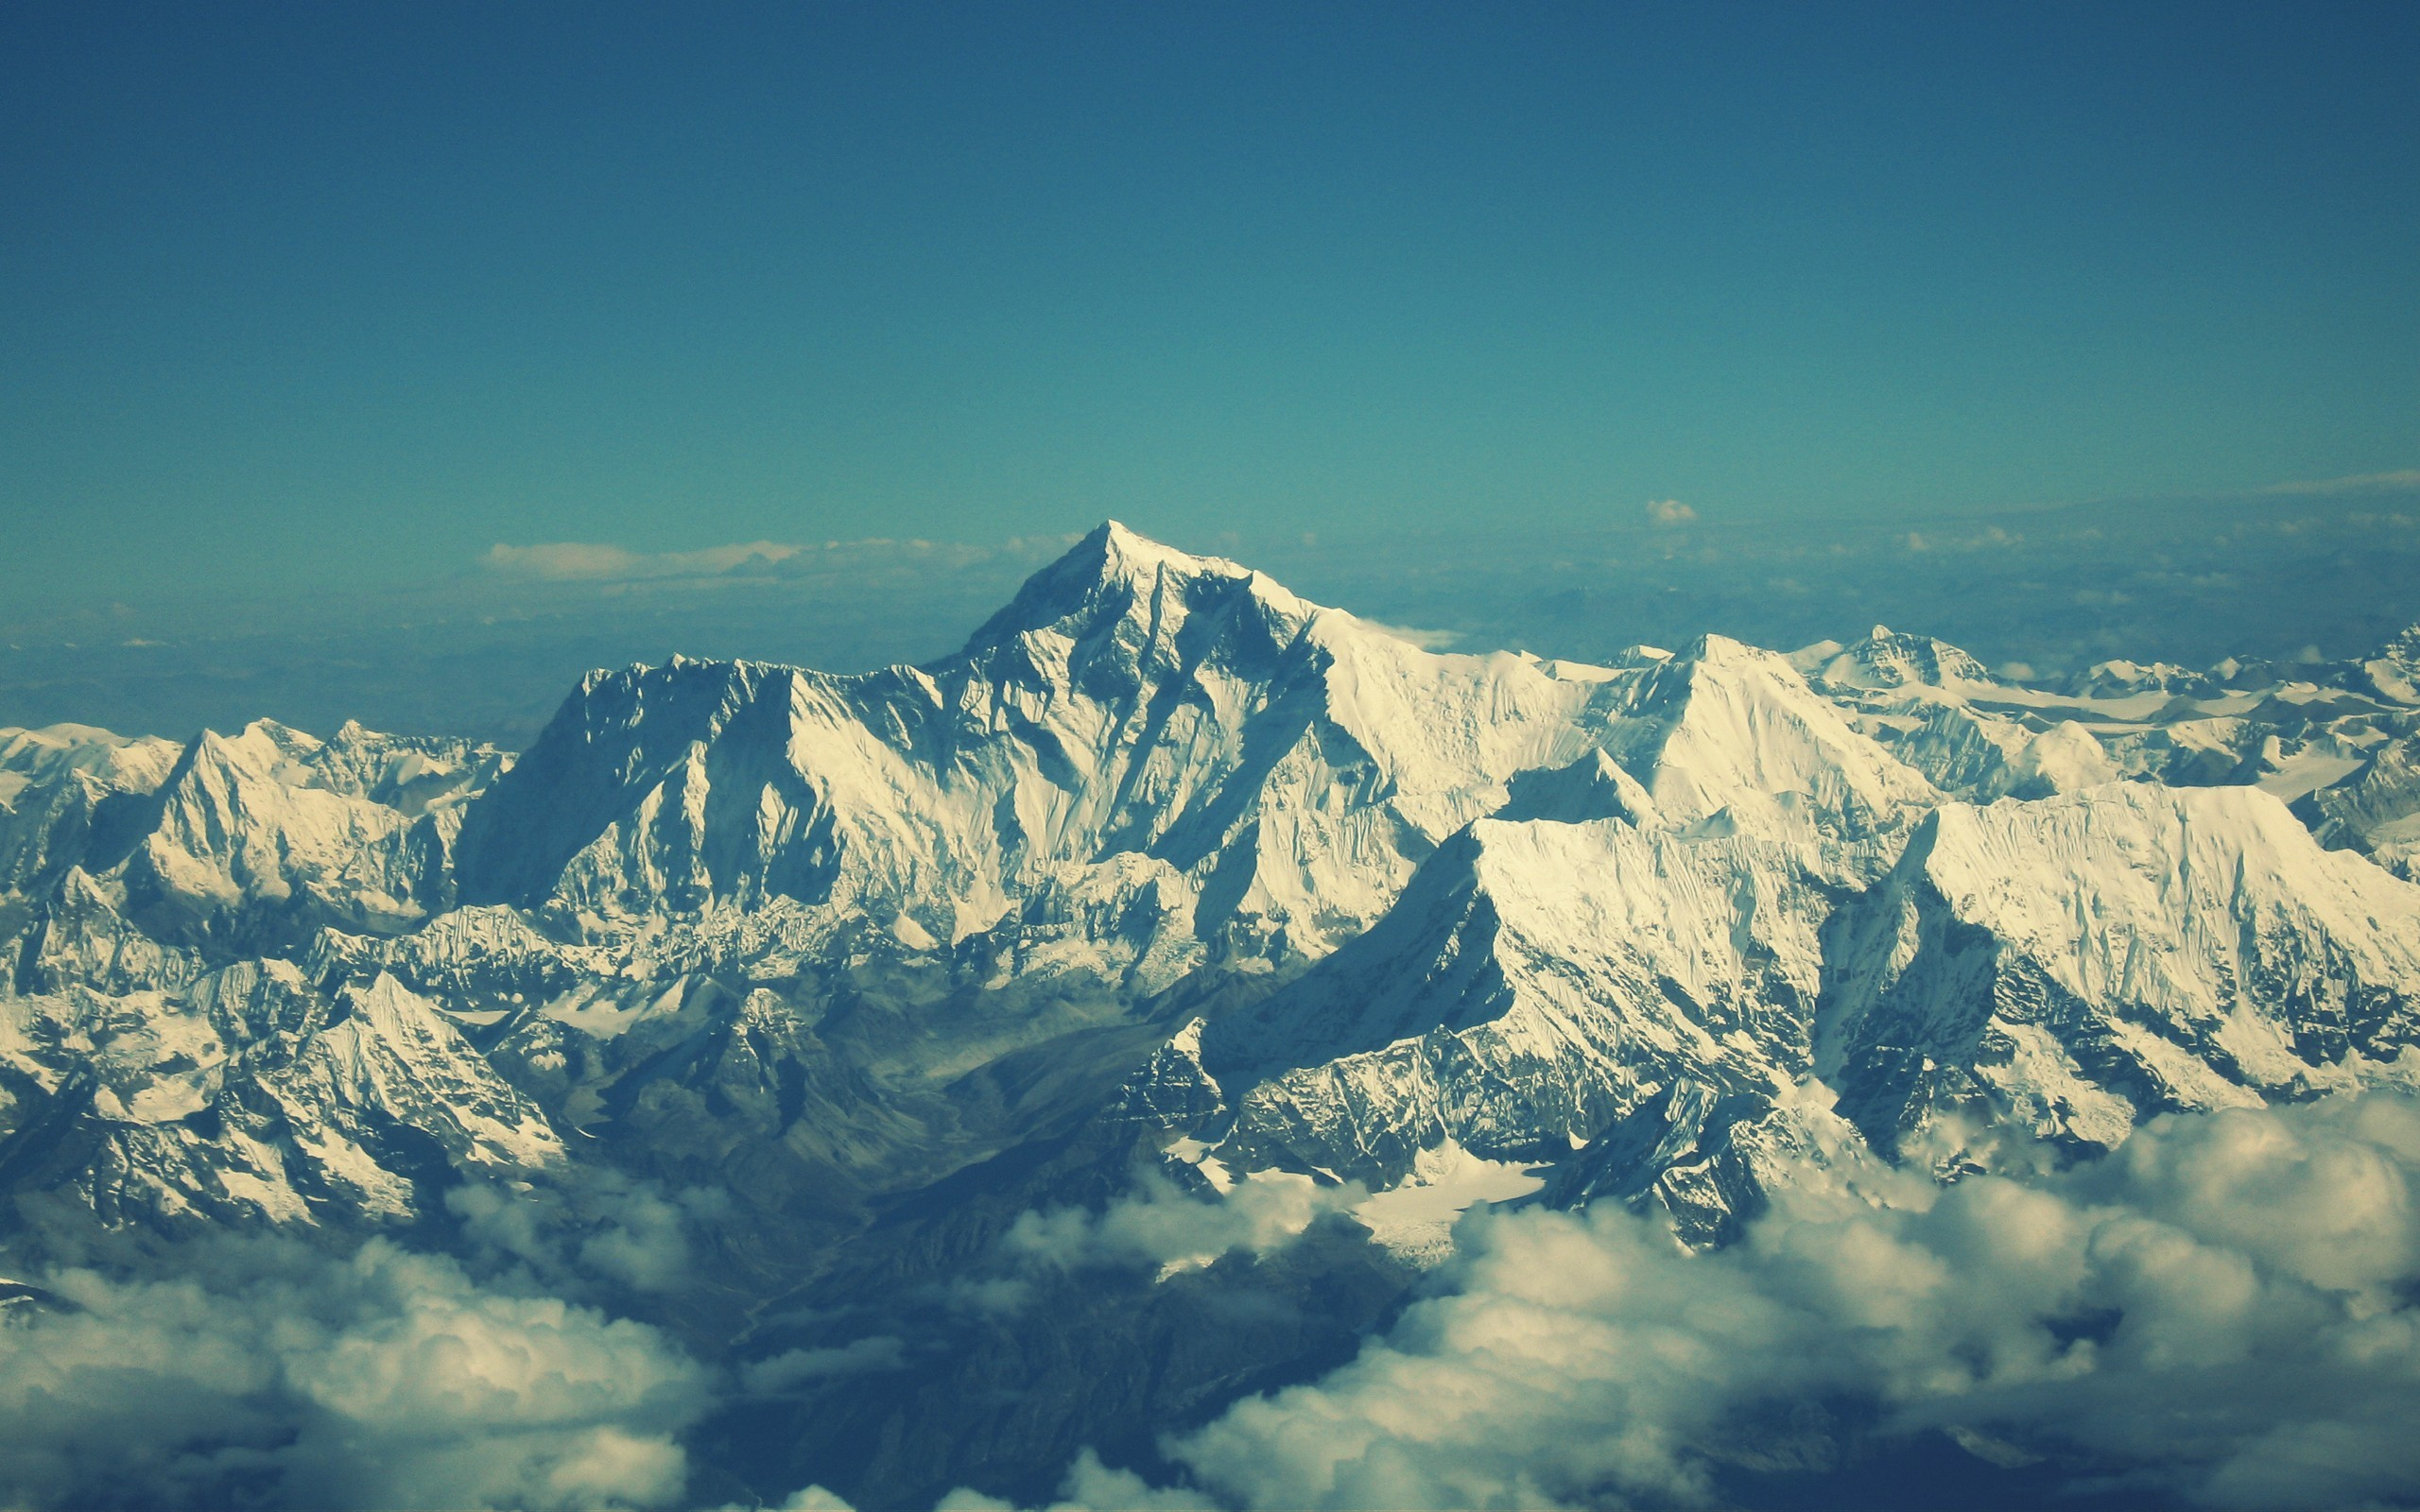 Himalaya Mount Everest Mountains HD Wallpaper